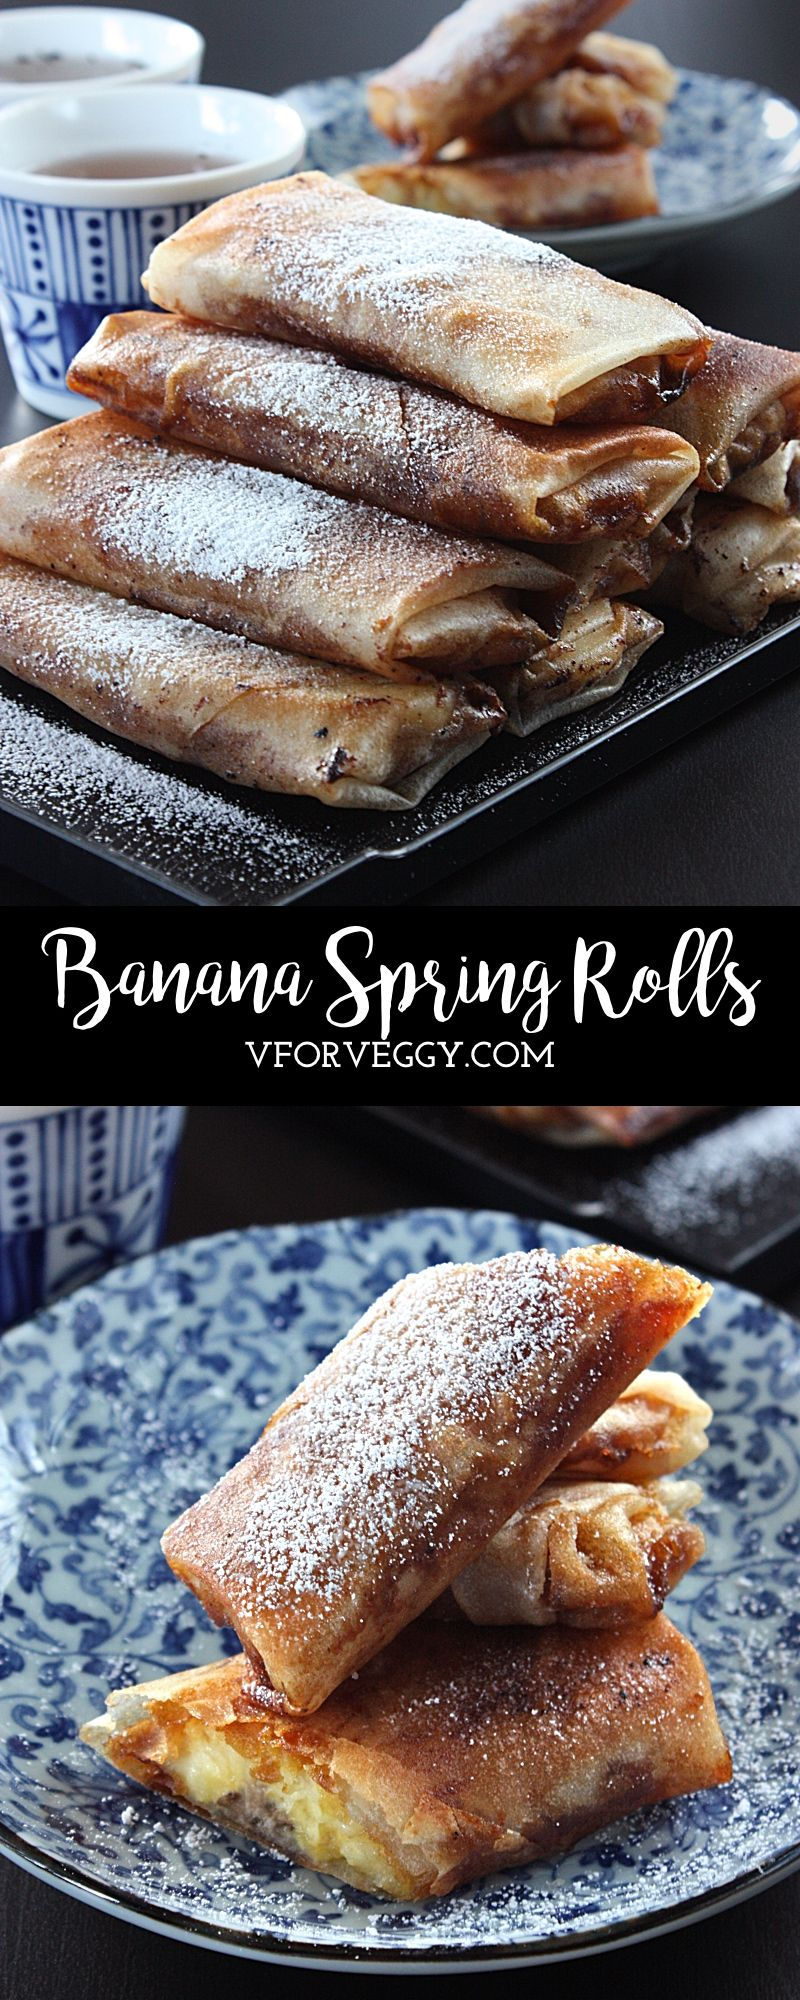 Banana spring rolls indonesian lumpia pisang philippines turon banana spring rolls v for veggy forumfinder Image collections